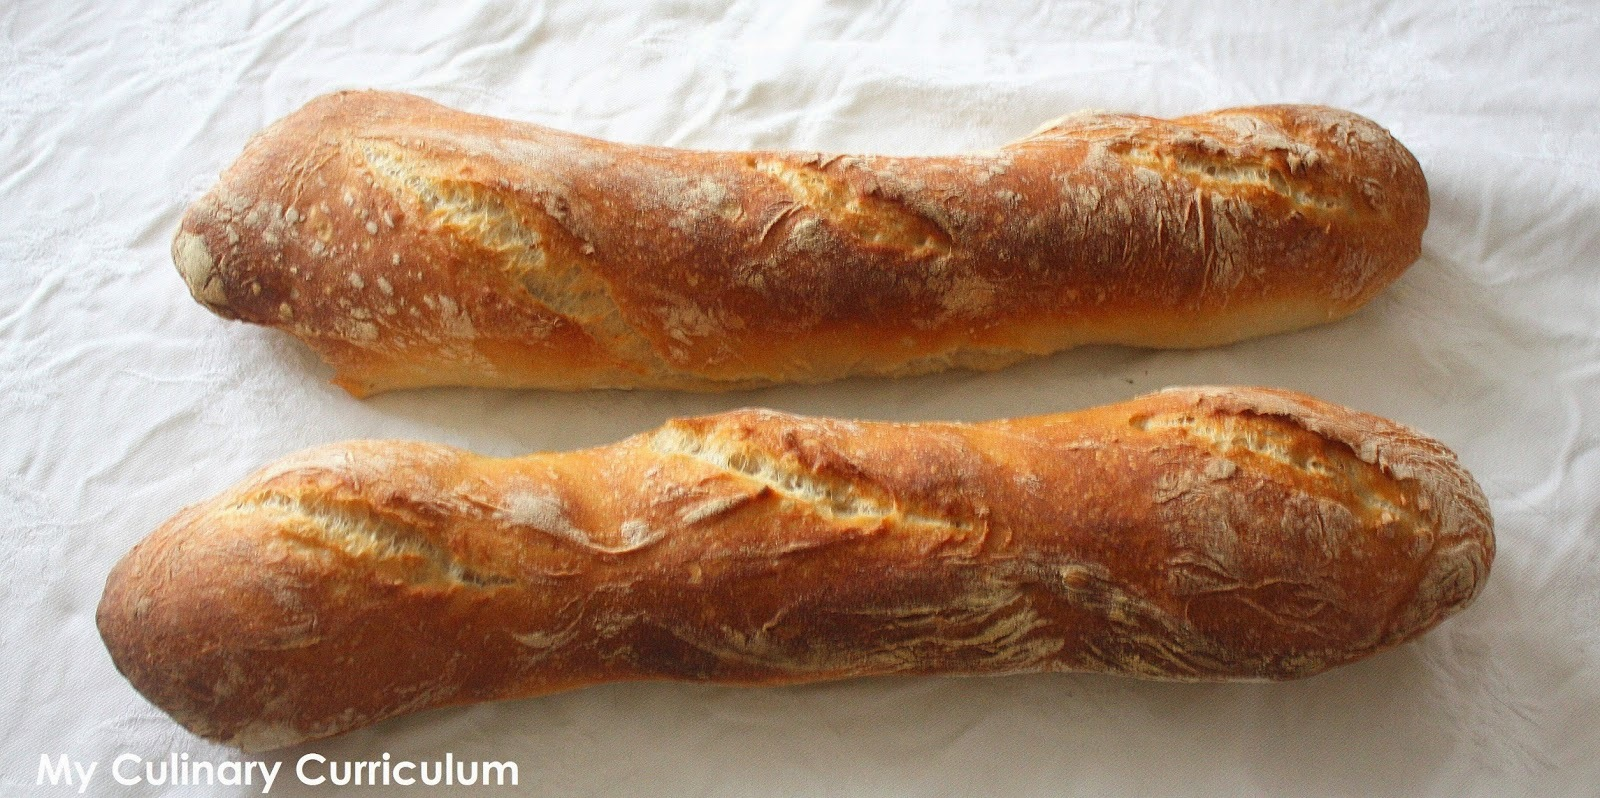 Gros pain (Recette d'Eric Kayser) (Large bread (Eric Kayser recipe))